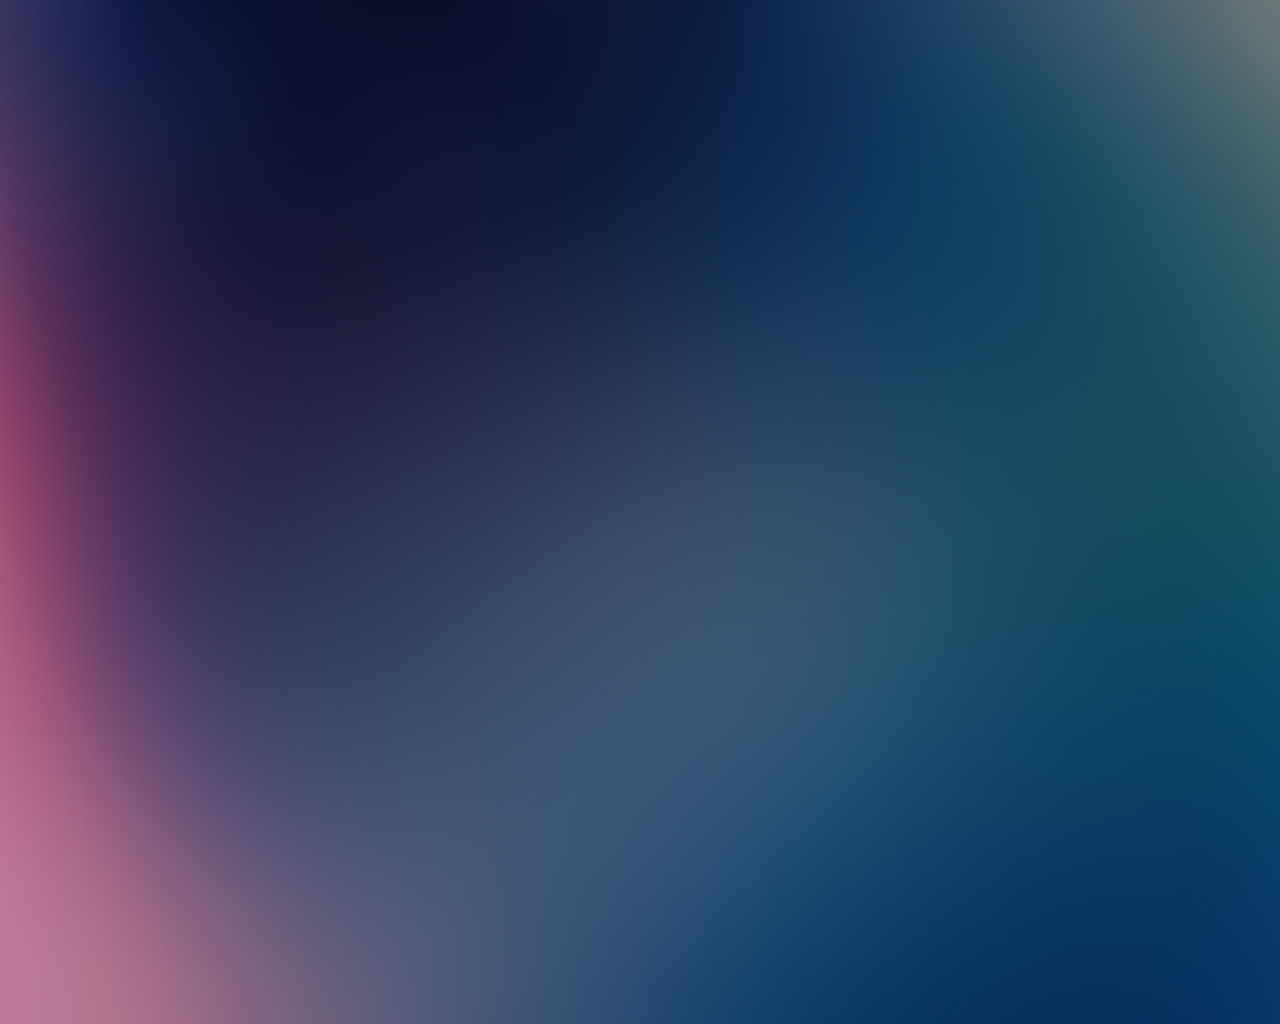 1280x1024 Blur Background 1280x1024 Resolution Hd 4k Wallpapers Images Backgrounds Photos And Pictures